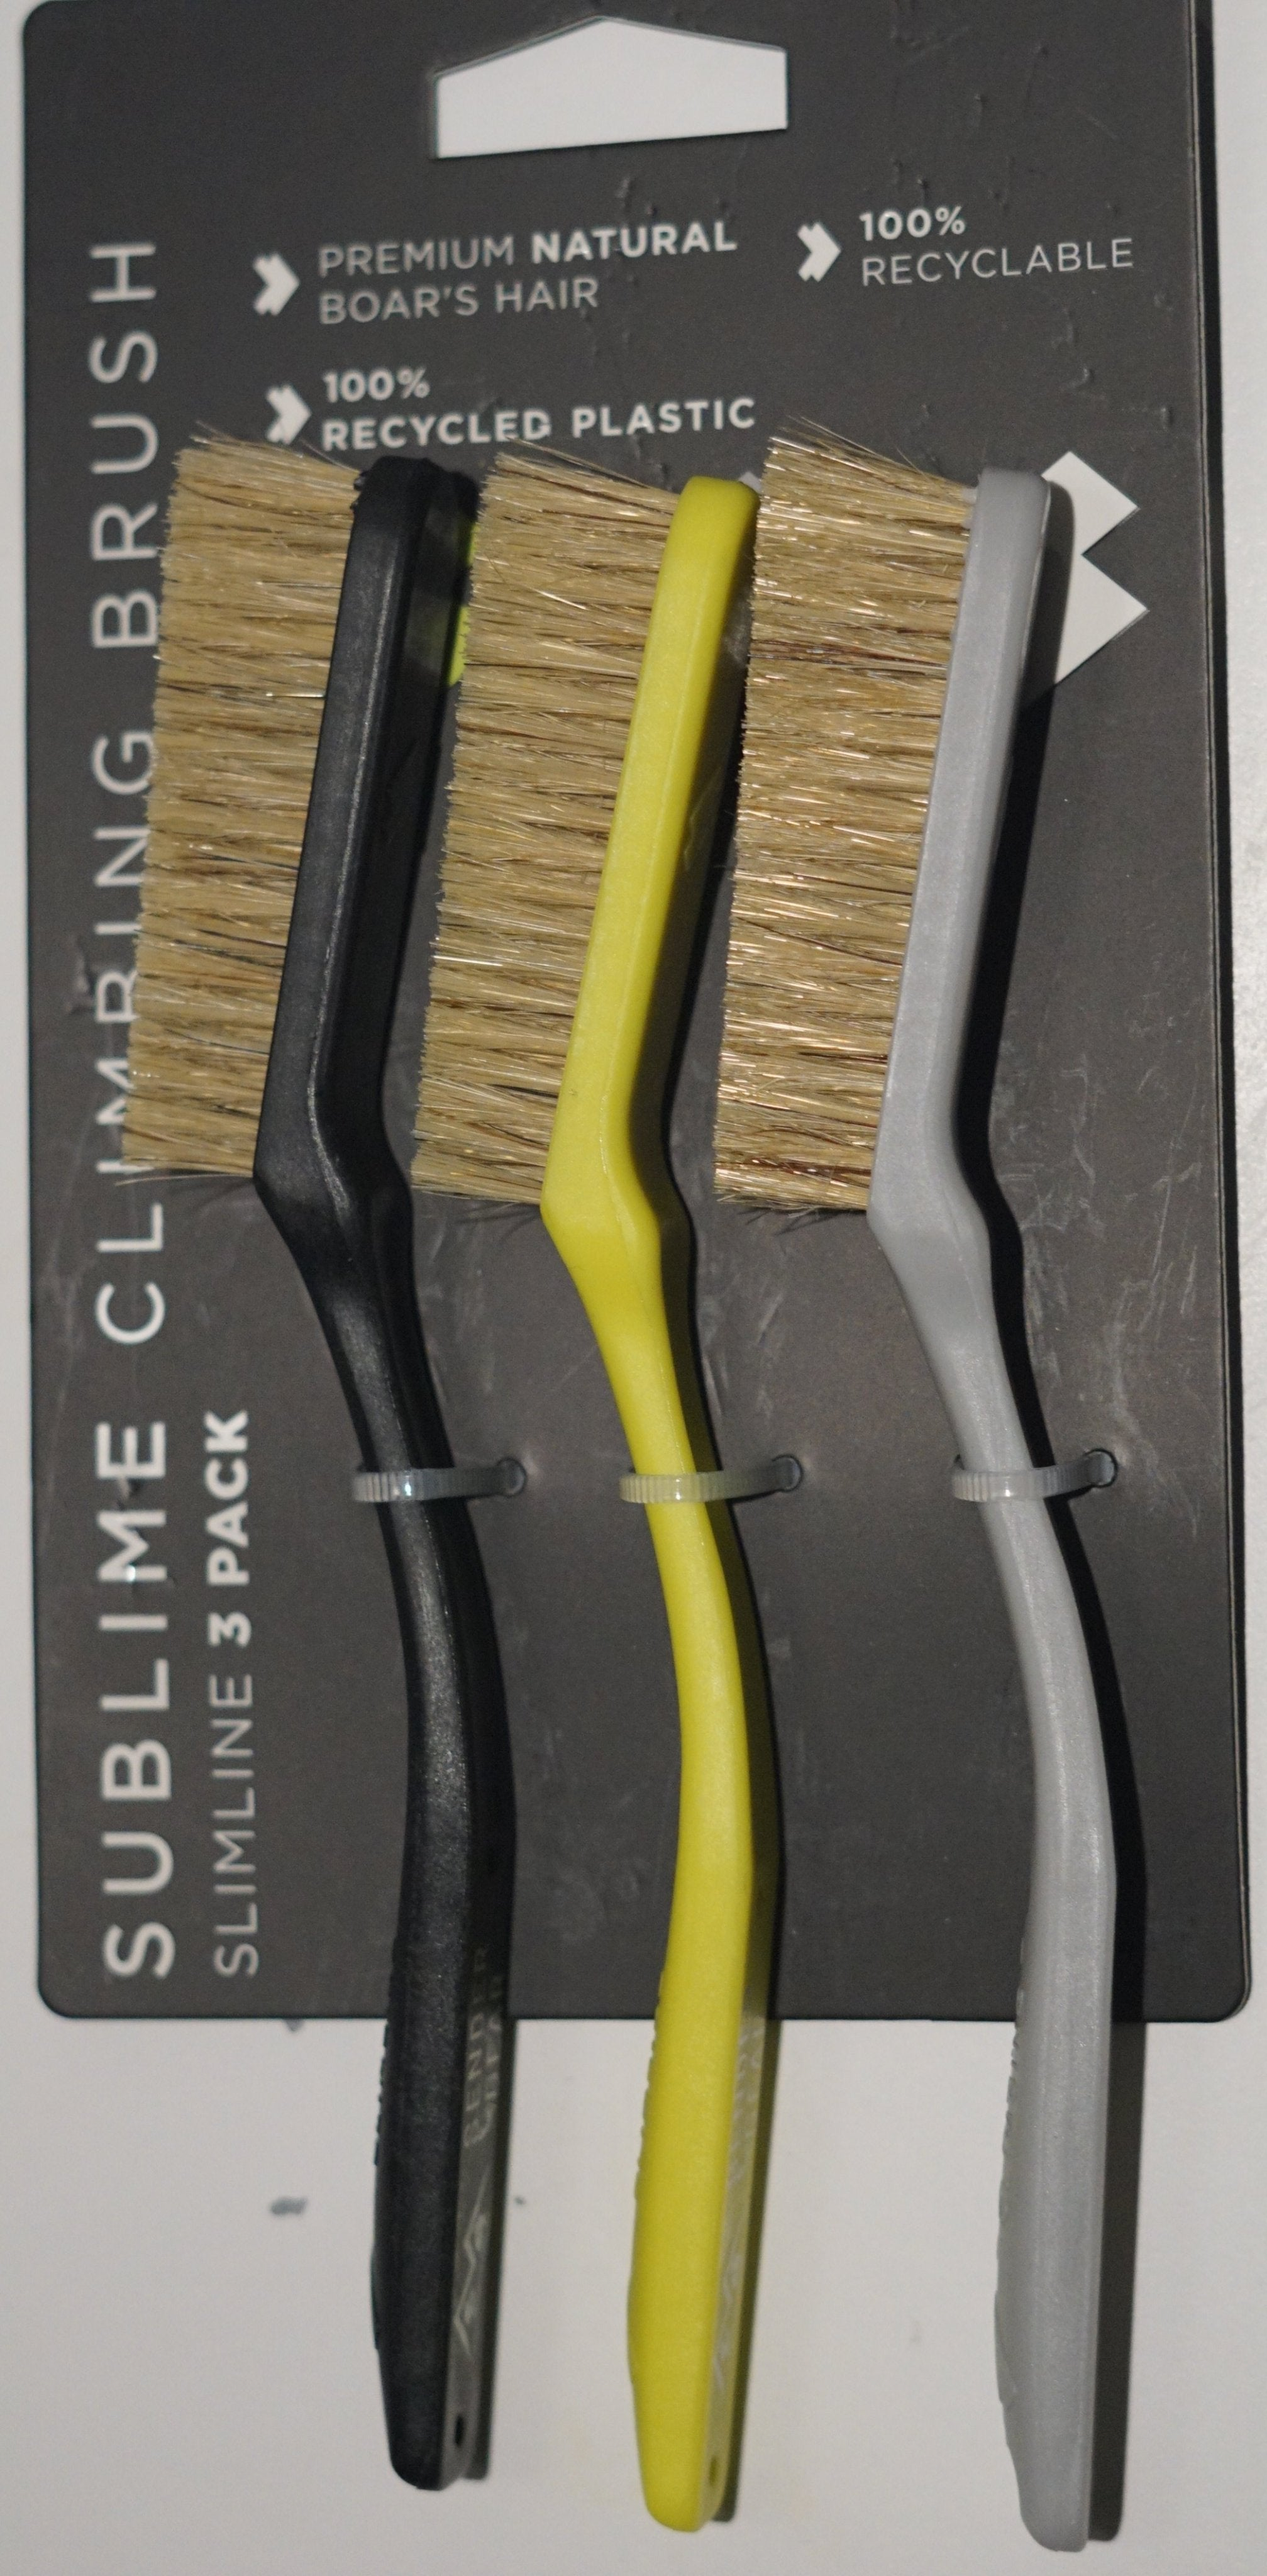 Slimline 3 pack Chalk Brushes - Black, Yellow, Grey